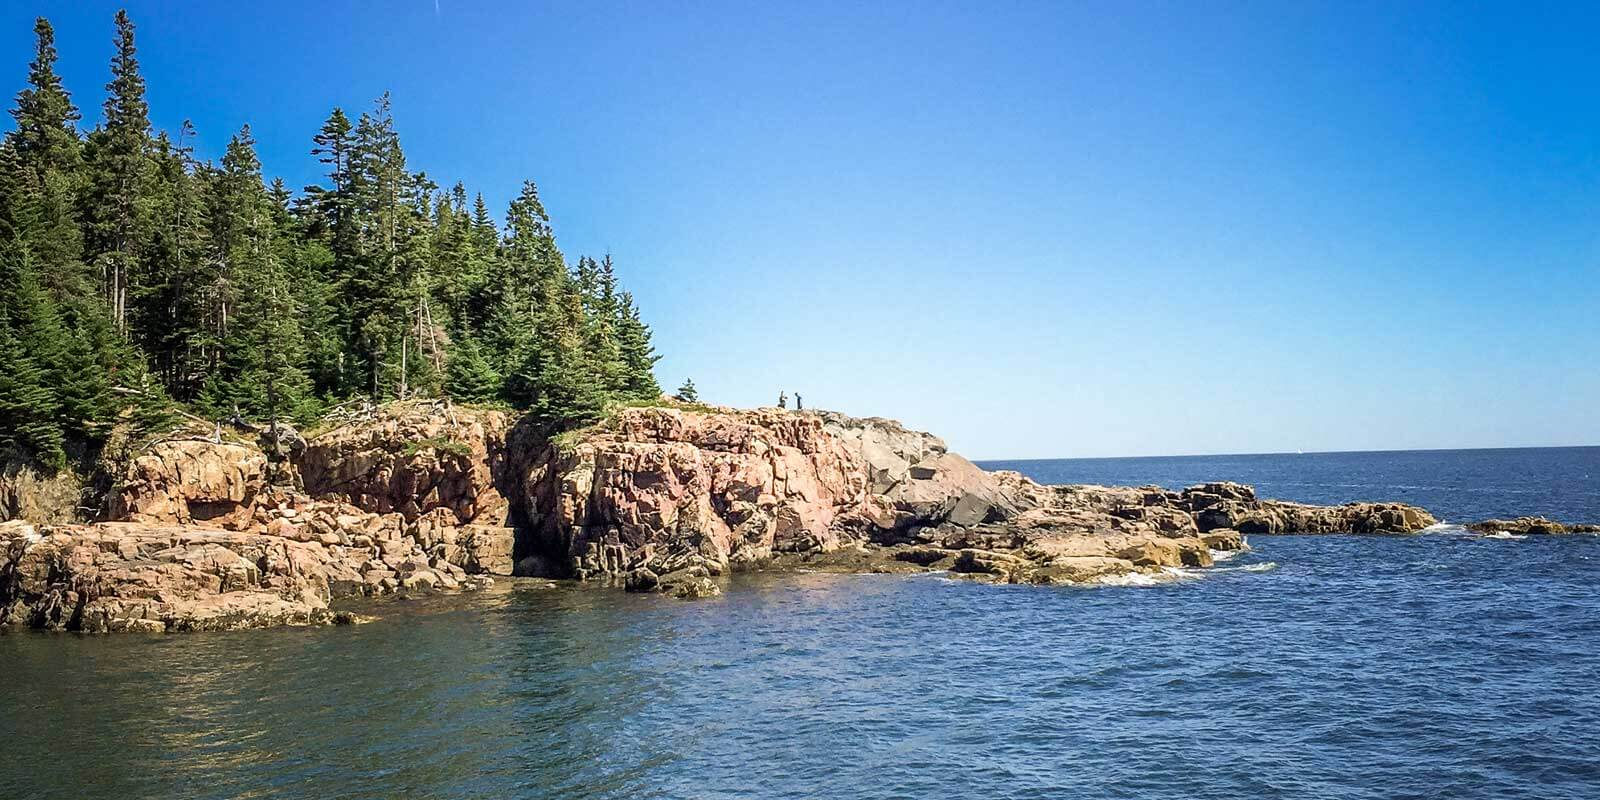 Landscape view of Little Hunters Beach in Acadia National Park, Maine